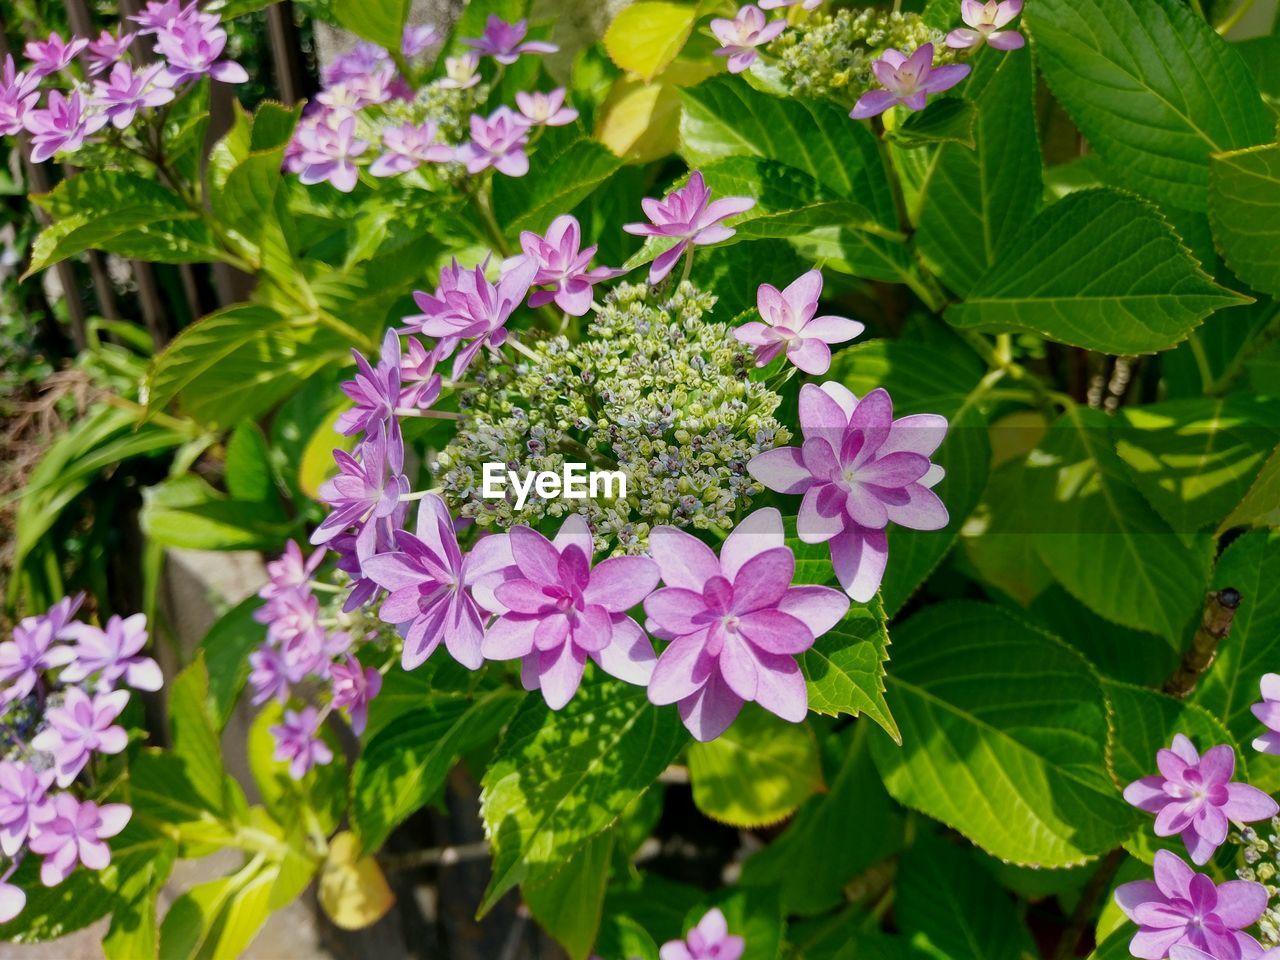 flowering plant, flower, plant, freshness, beauty in nature, fragility, growth, vulnerability, petal, leaf, plant part, pink color, nature, close-up, inflorescence, flower head, green color, day, outdoors, focus on foreground, no people, purple, lilac